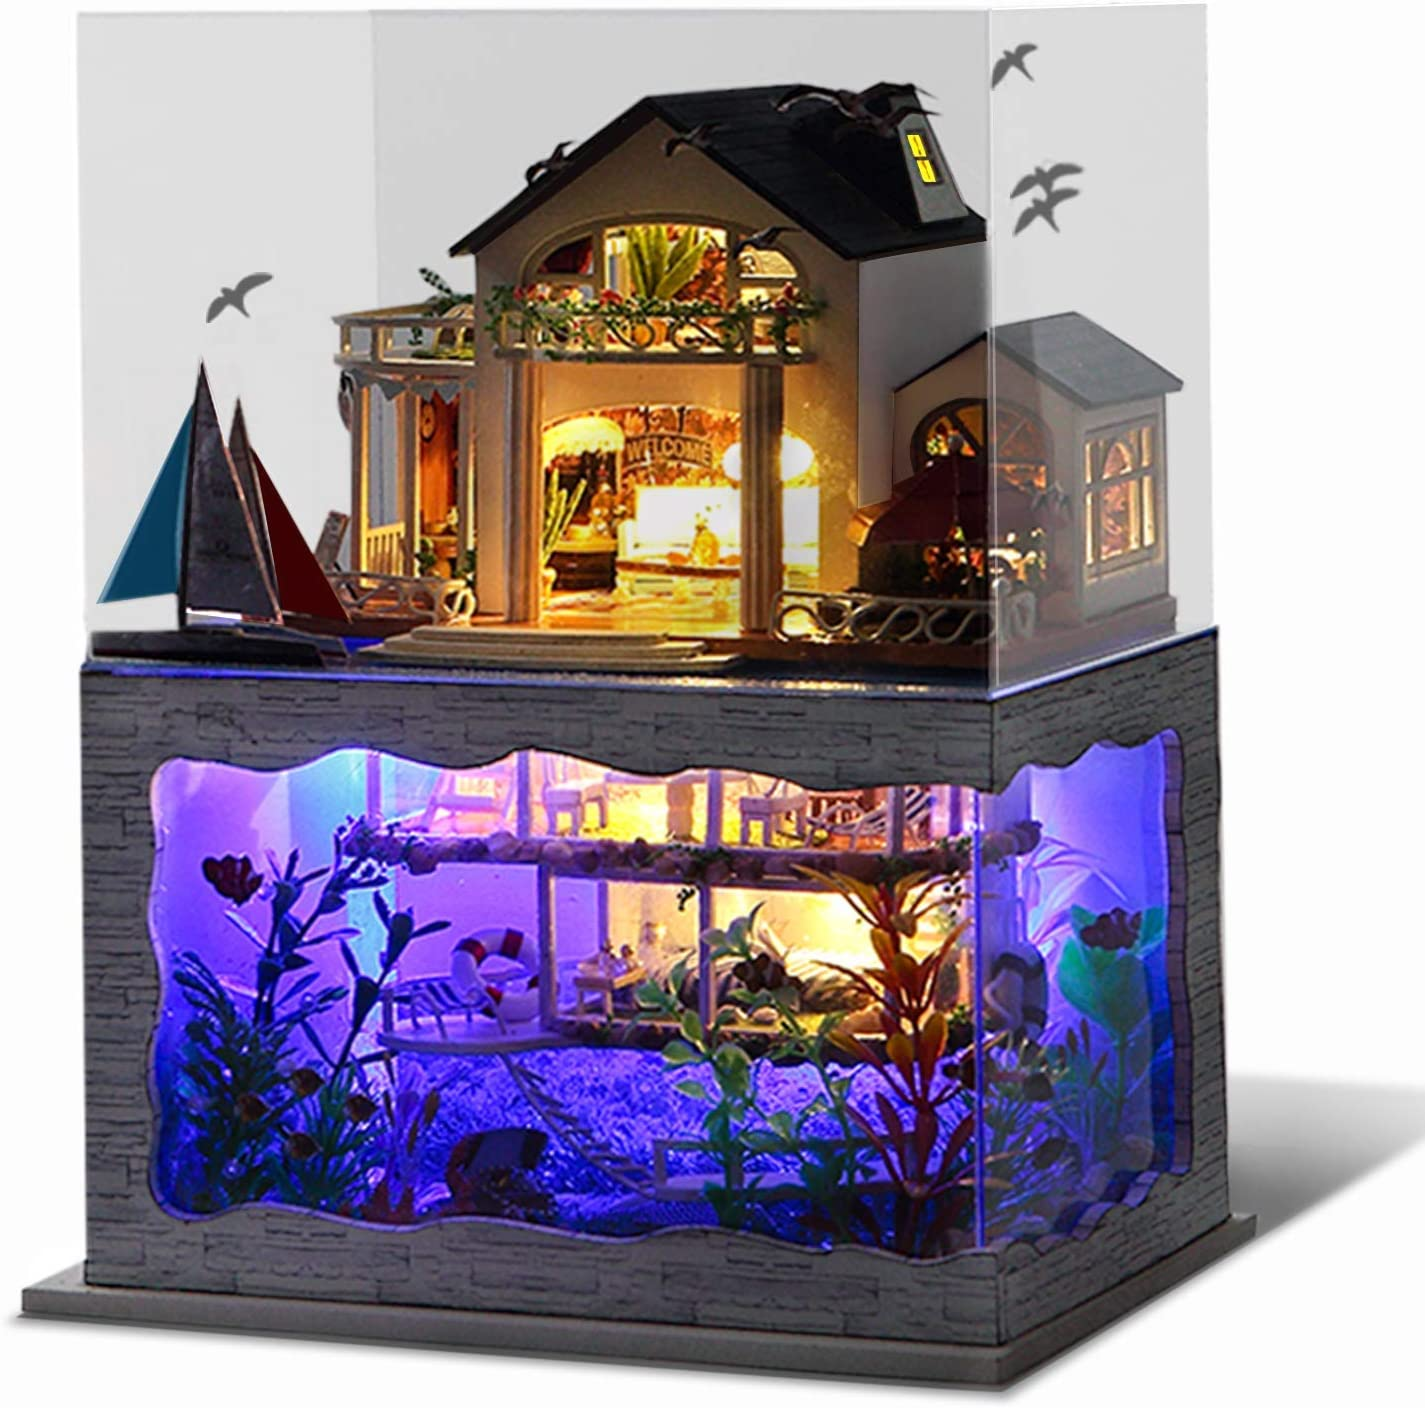 UniHobby DIY Miniature Dollhouse Kit, Tiny House Impression Hawaii 3D Wooden Puzzle Toy Gift with Furniture Dust Proof LED Lights for Adults